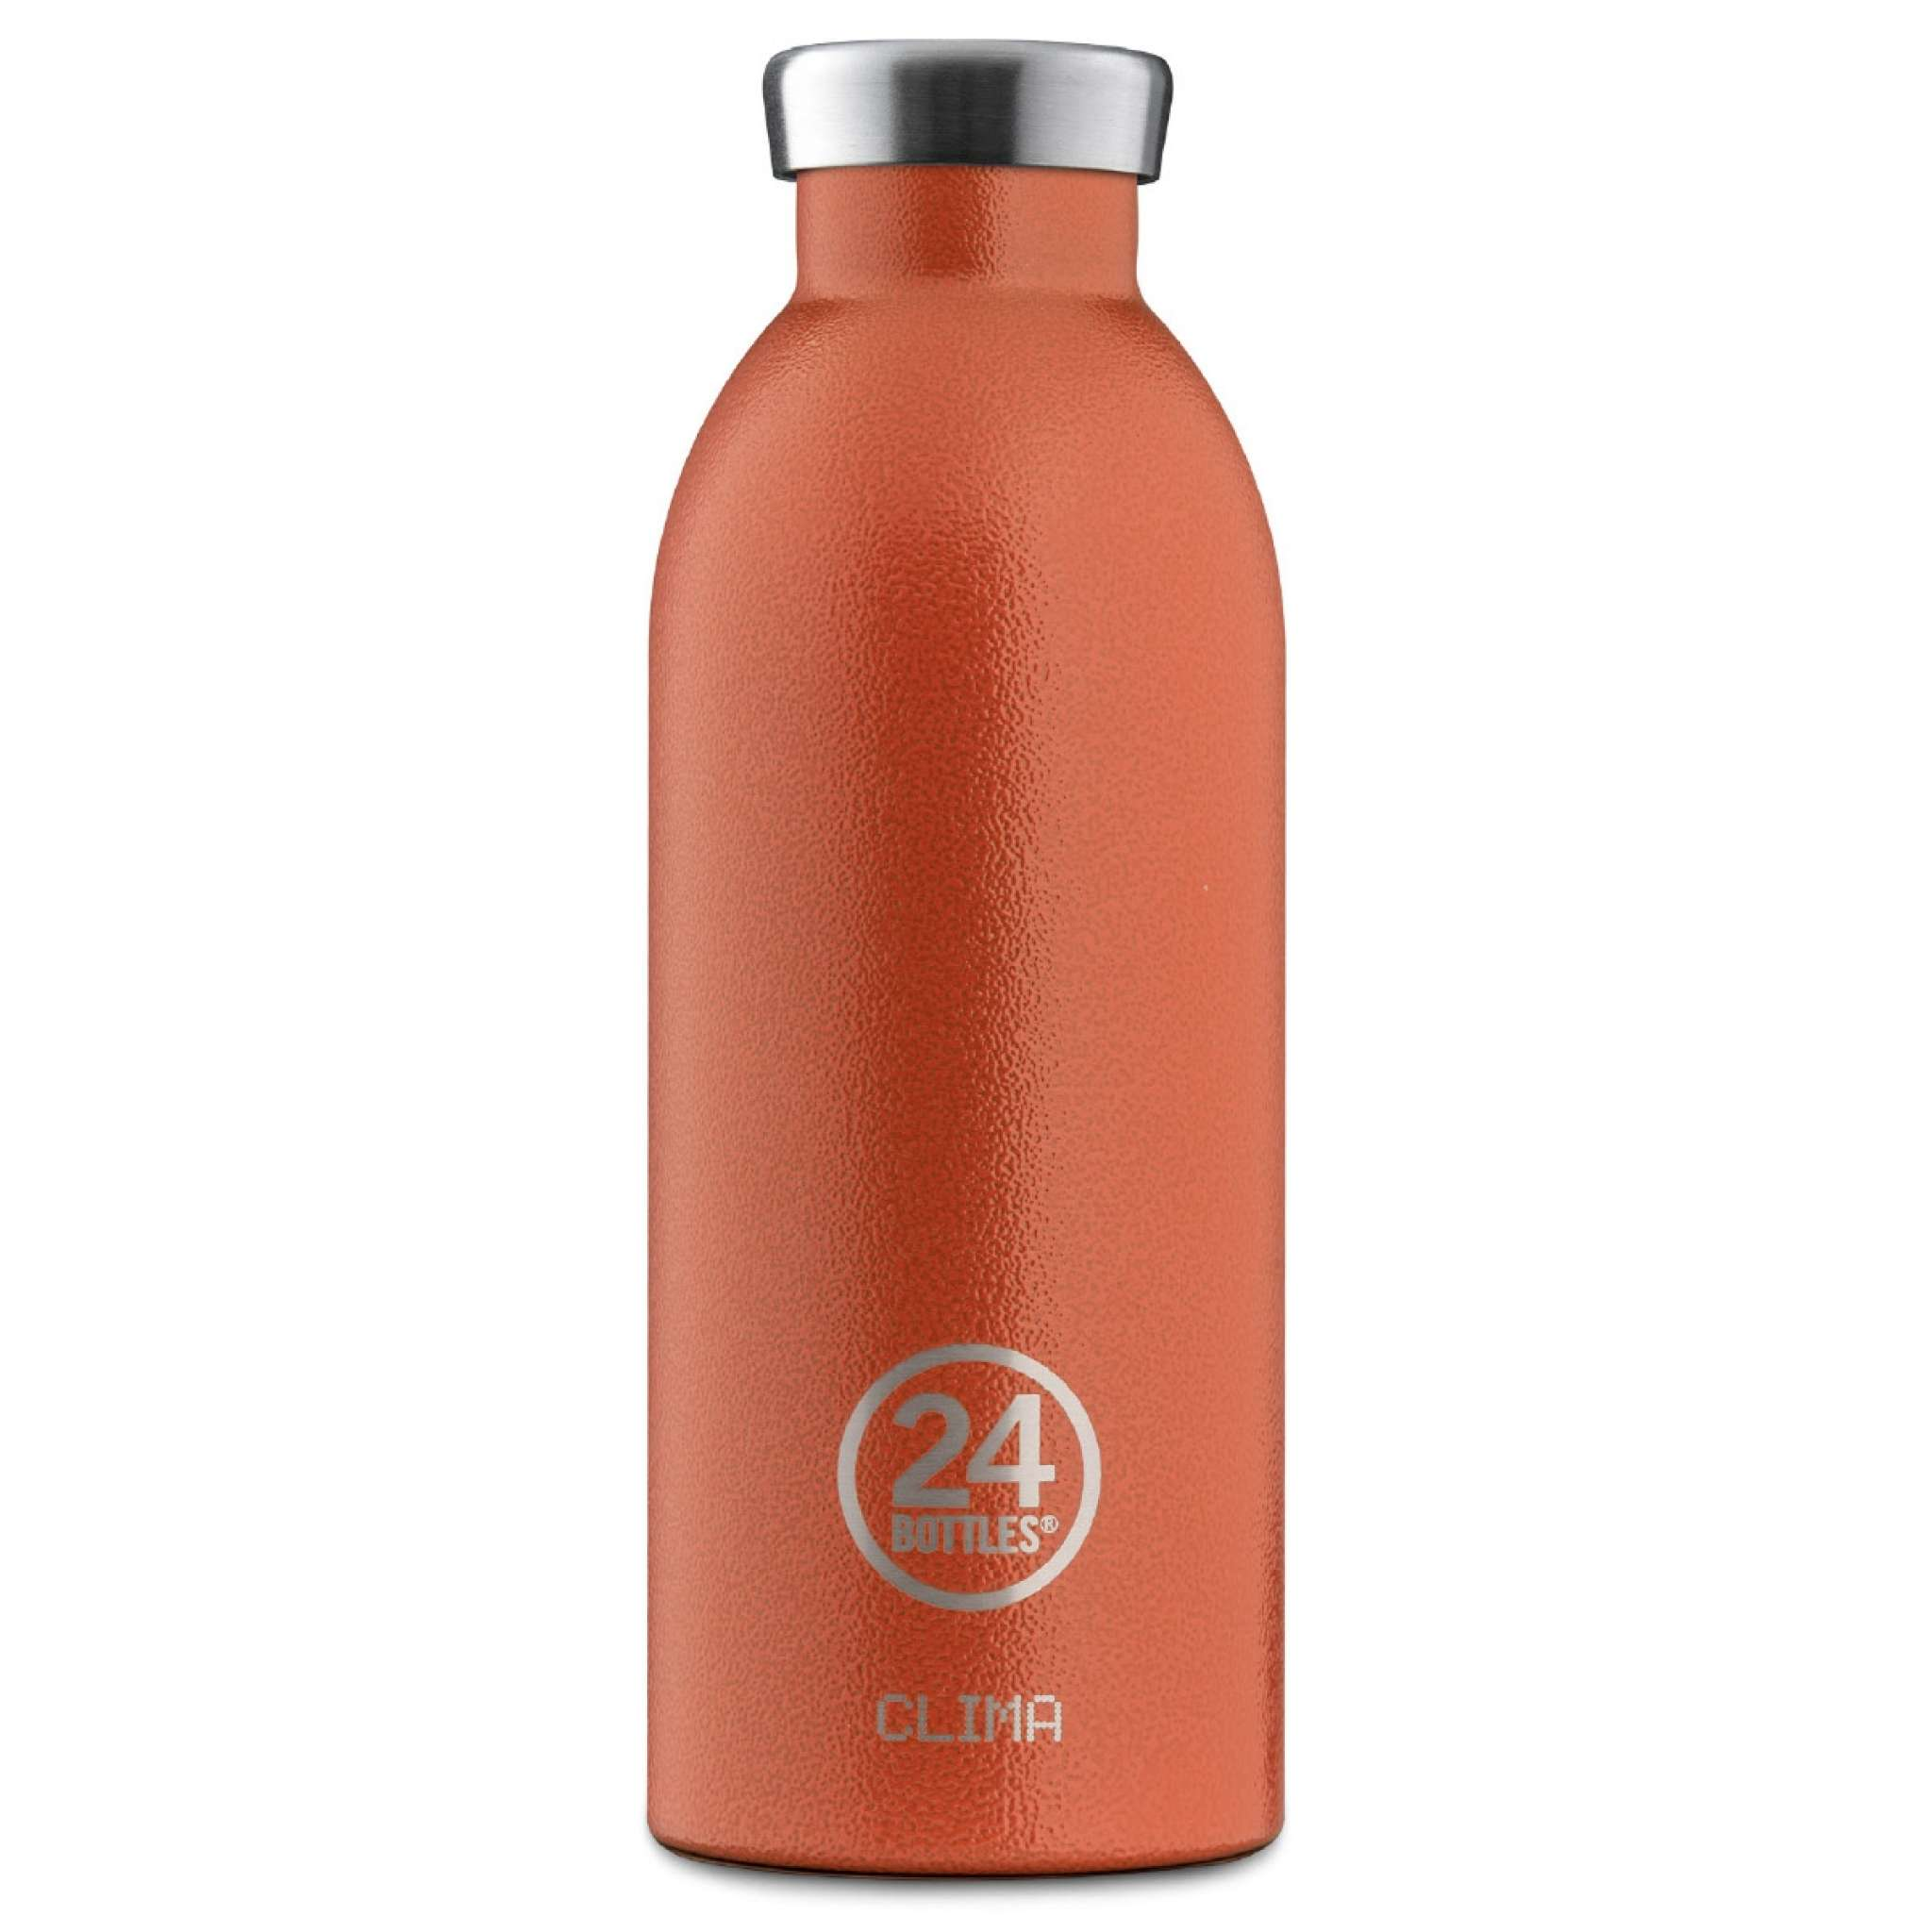 Clima 24Bottles 500 ml Sunset Orange